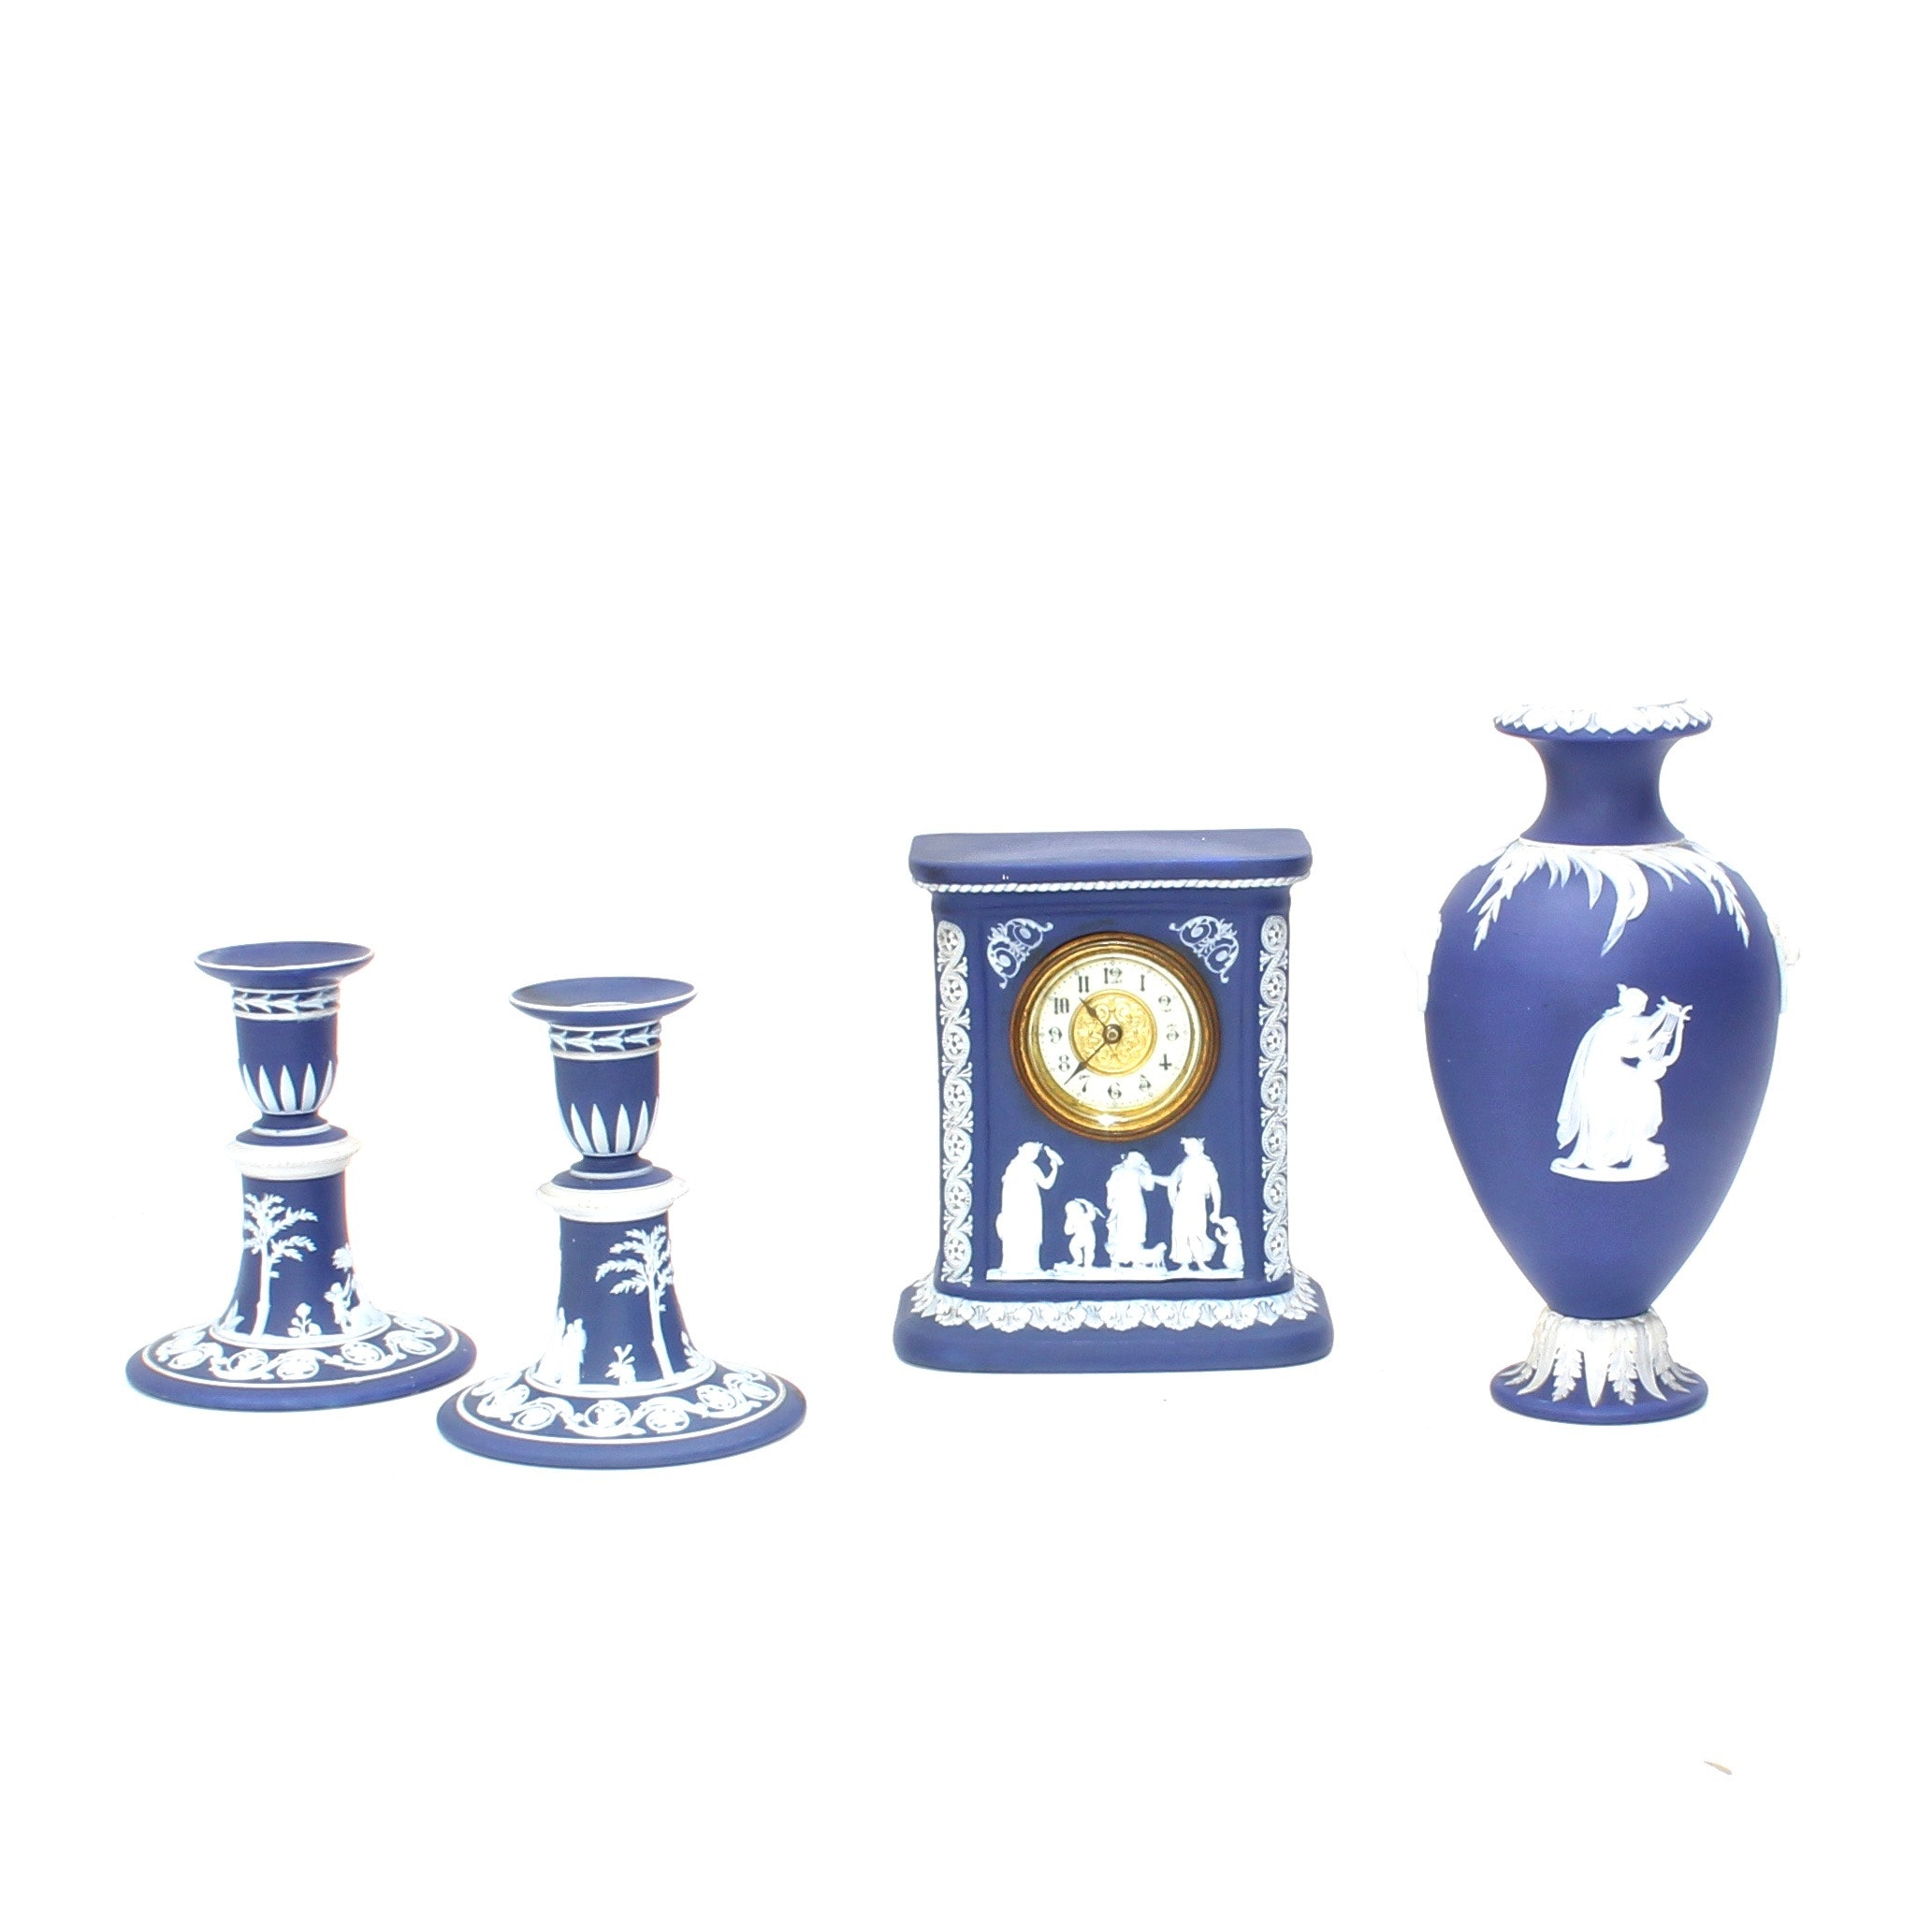 Wedgwood Cobalt Blue Jasper Antique Clock and Vase With Vintage Candlesticks